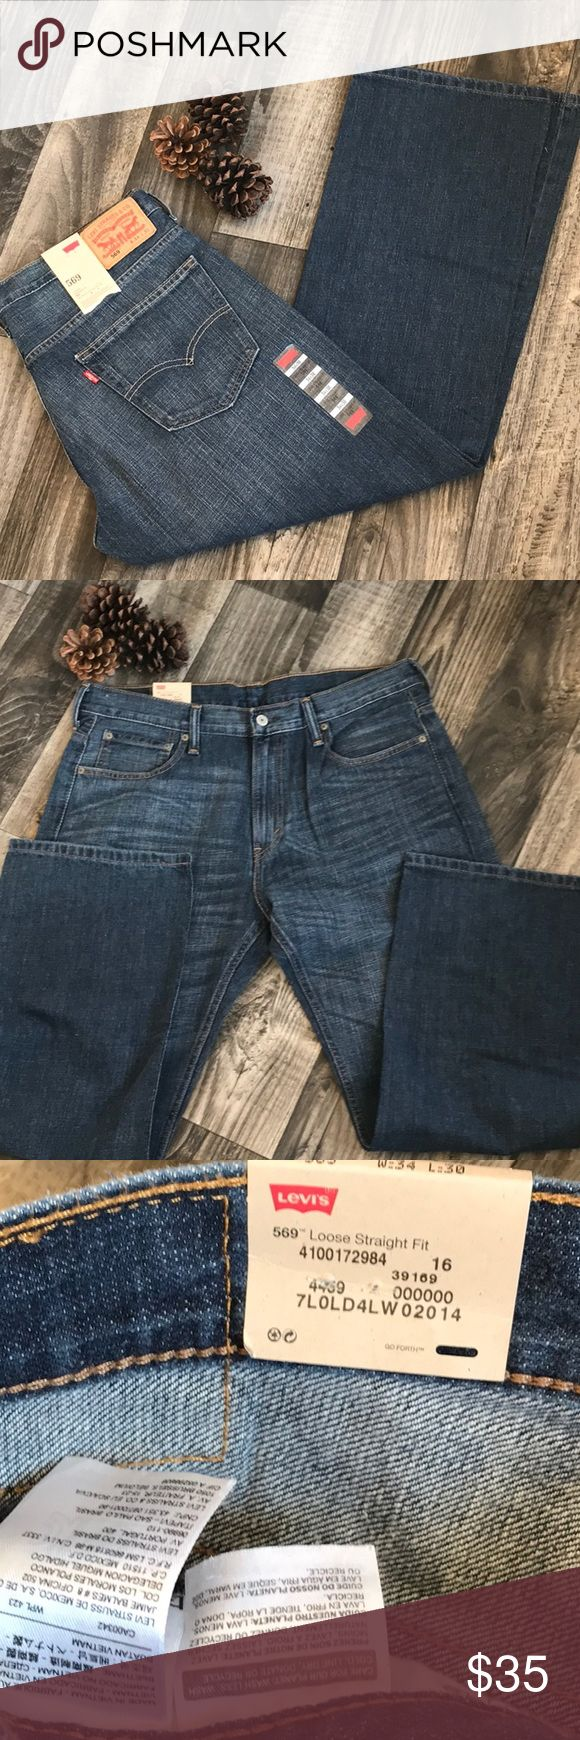 🌿NWT- Levi 569 Loose Straight Fit- 34x30🌿 NWT- Levi 569 Loose Straight Fit, size 34x30. Never been worn, excellent condition and smoke free home!! Levi's Jeans Straight